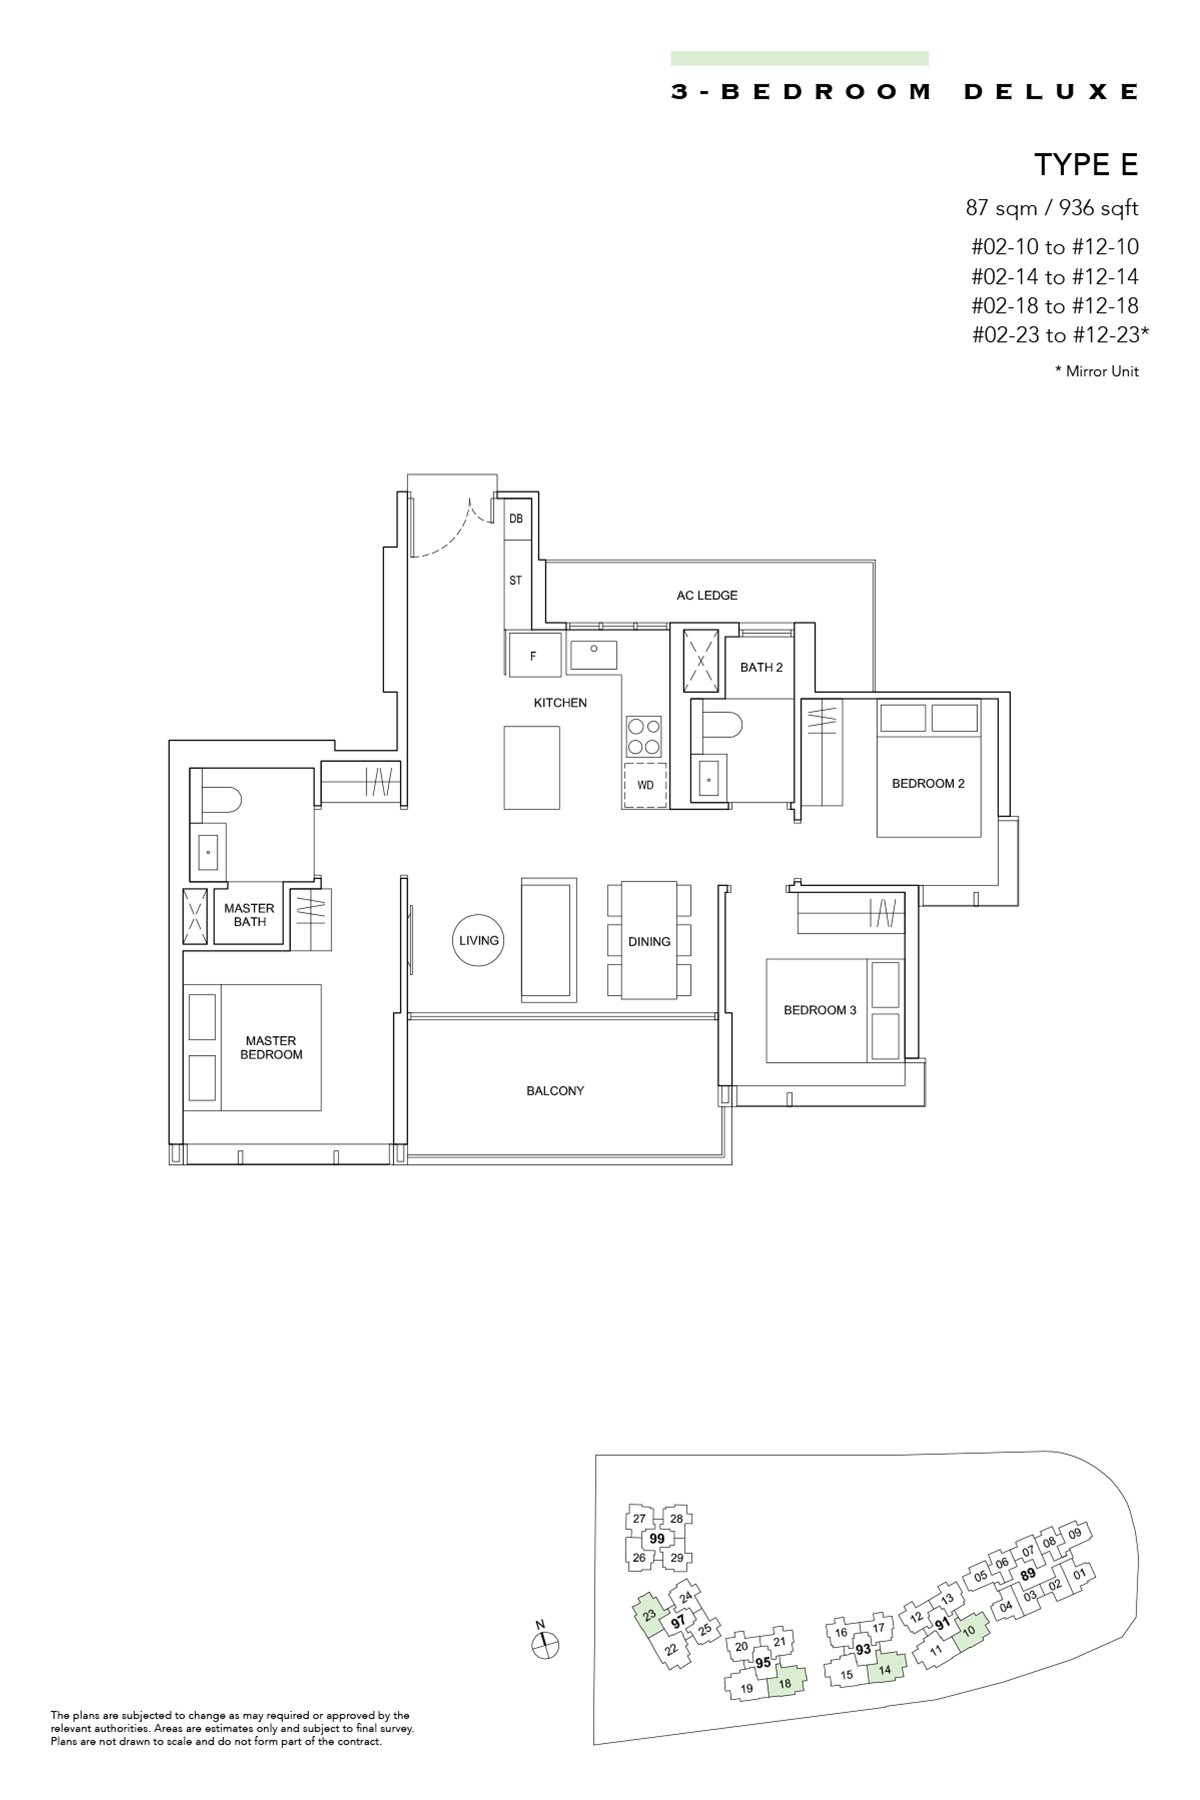 Hyll on Holland Type E 3br Deluxe 936 sqft